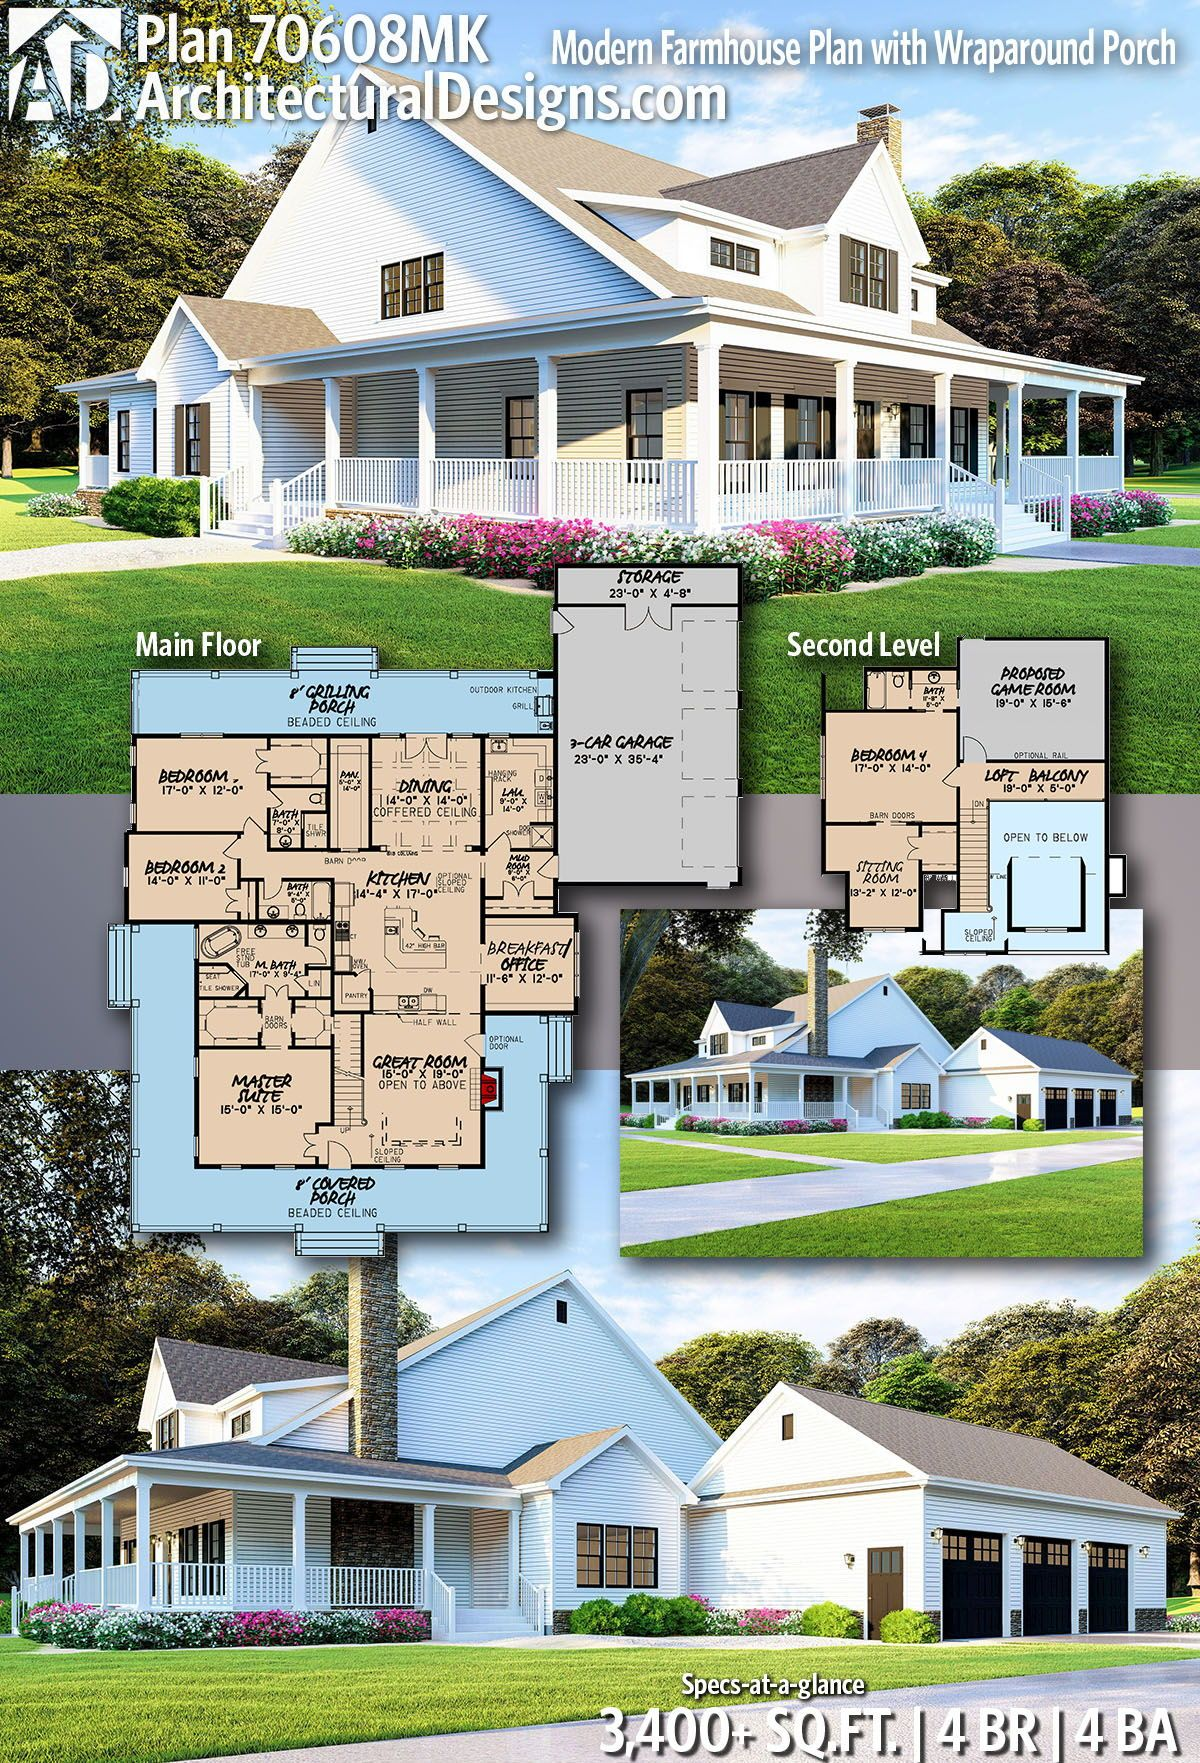 Ready when you are where do want to build mk adhouseplans modern farmhouse architecturaldesigns country home also architectural designs plan gives bedrooms rh pinterest